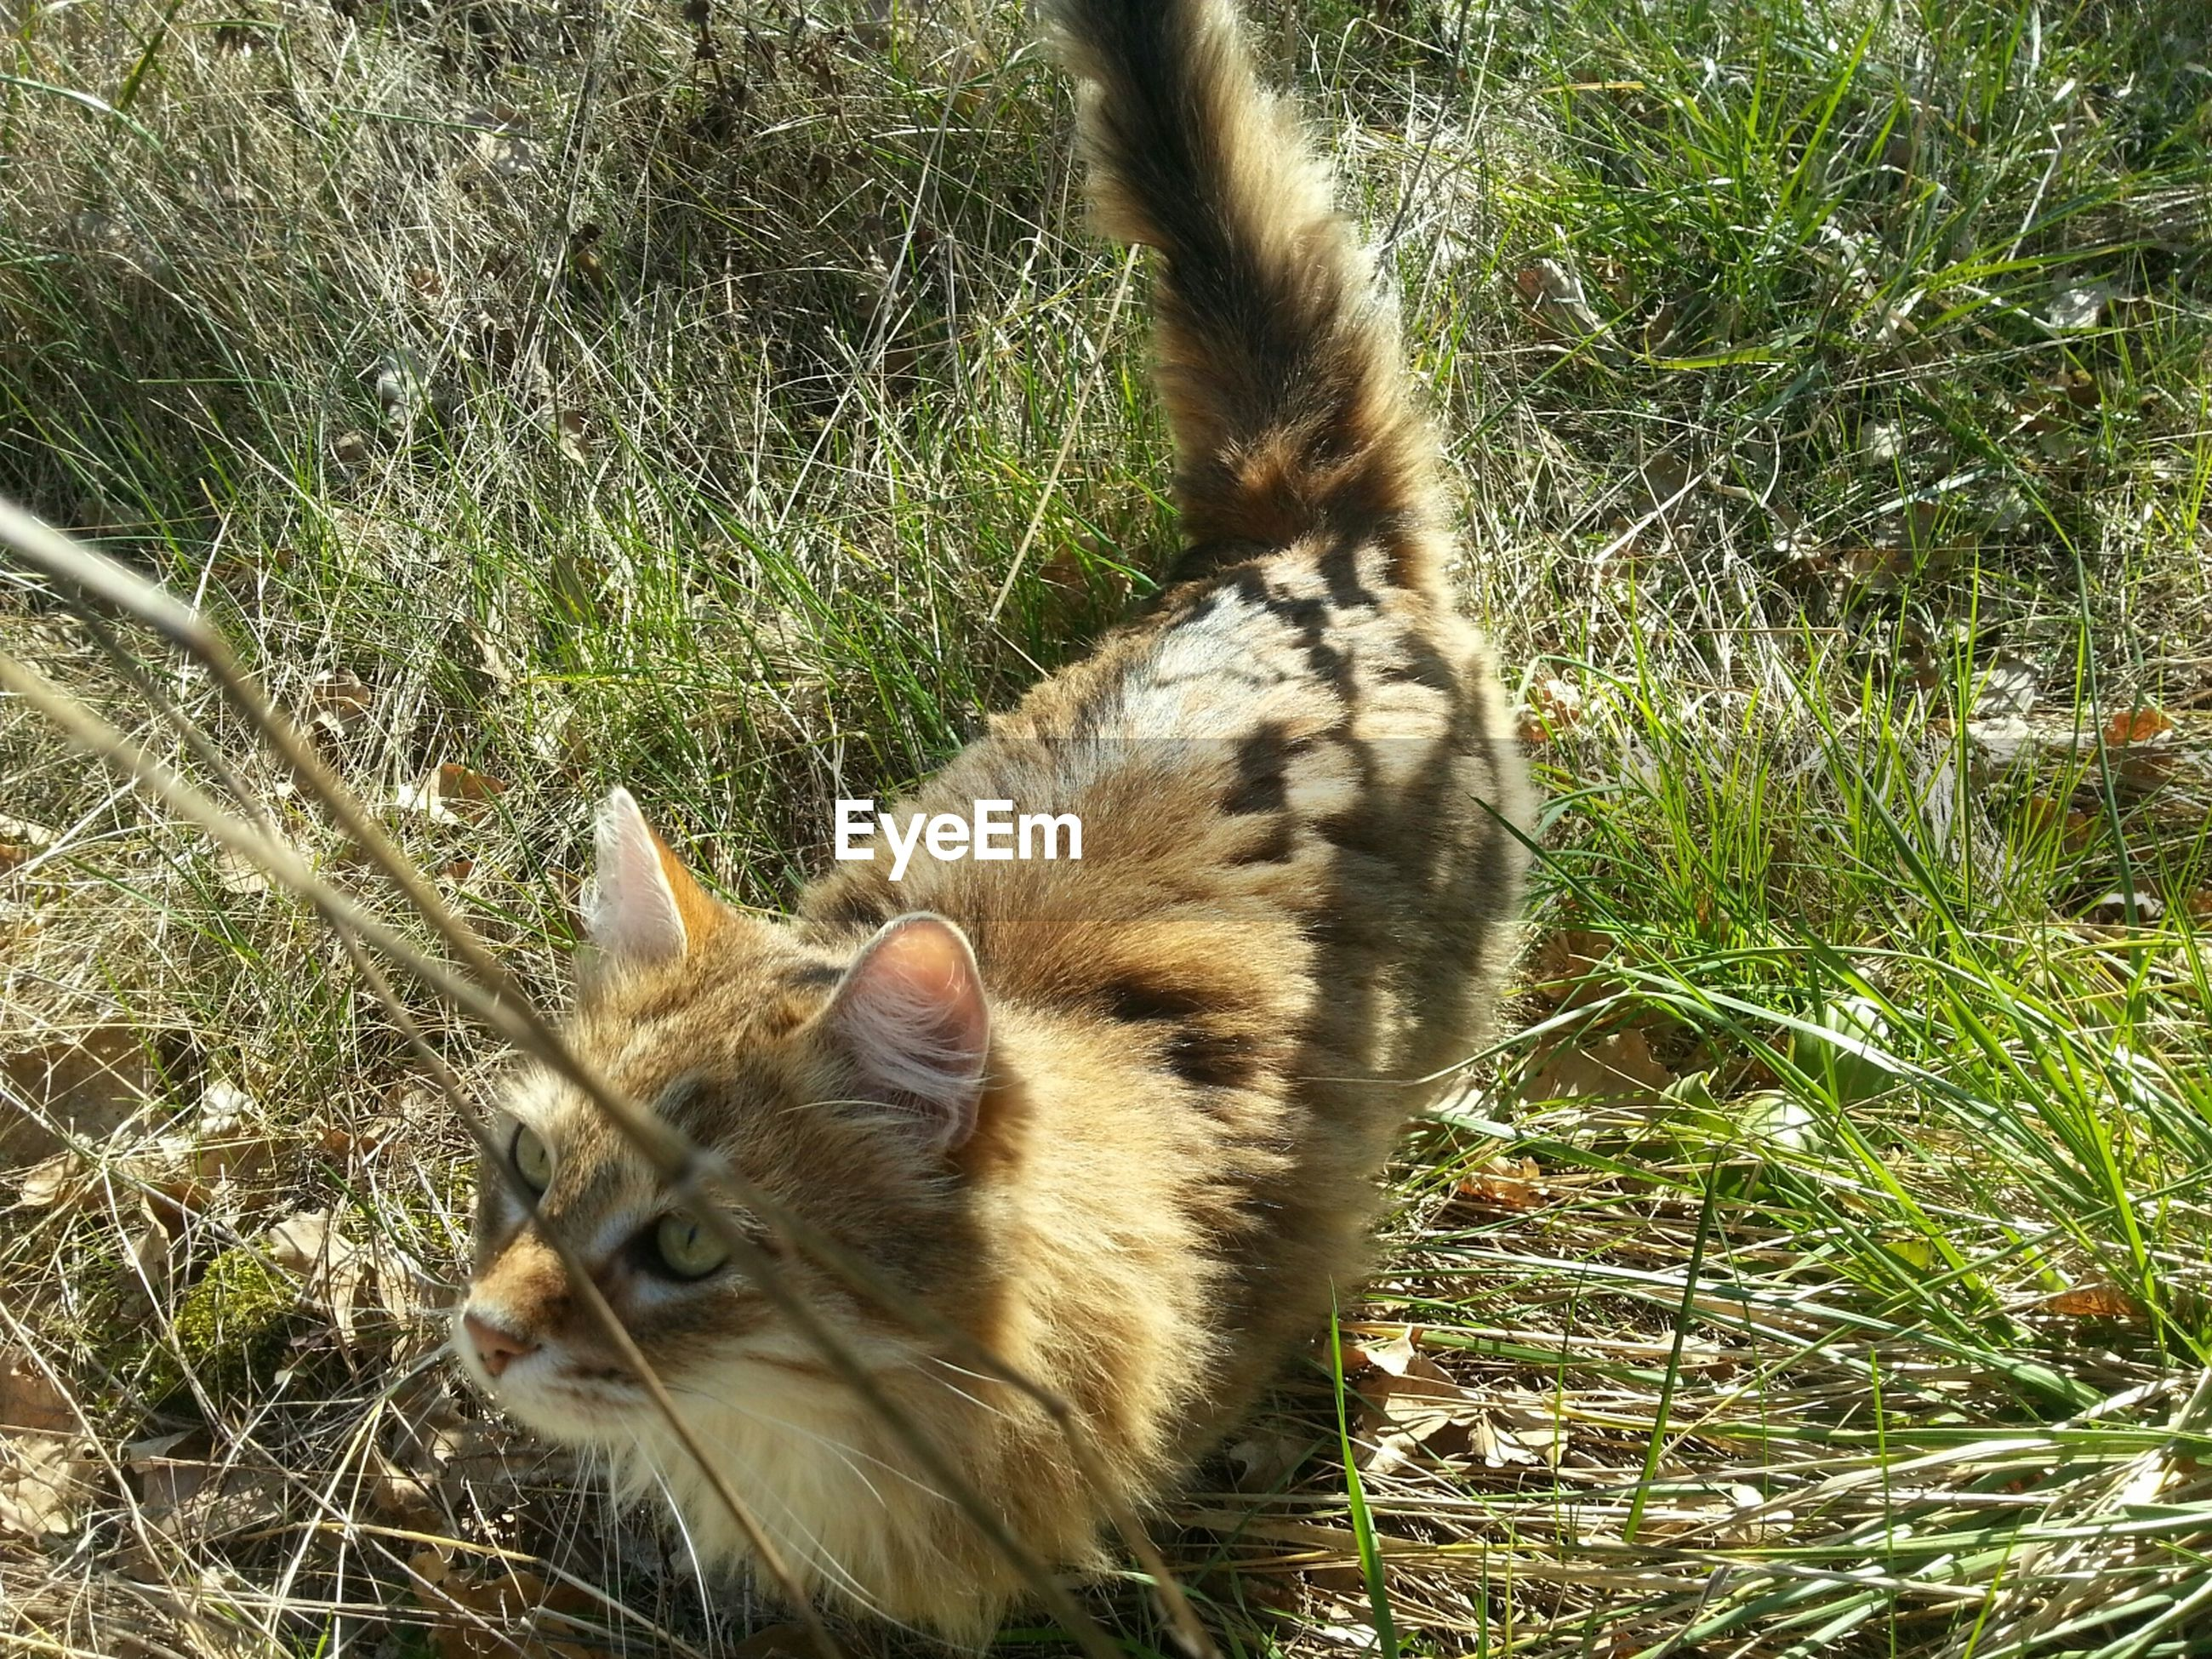 animal themes, one animal, mammal, domestic animals, domestic cat, cat, pets, feline, grass, whisker, relaxation, sitting, high angle view, plant, animals in the wild, field, wildlife, nature, no people, day